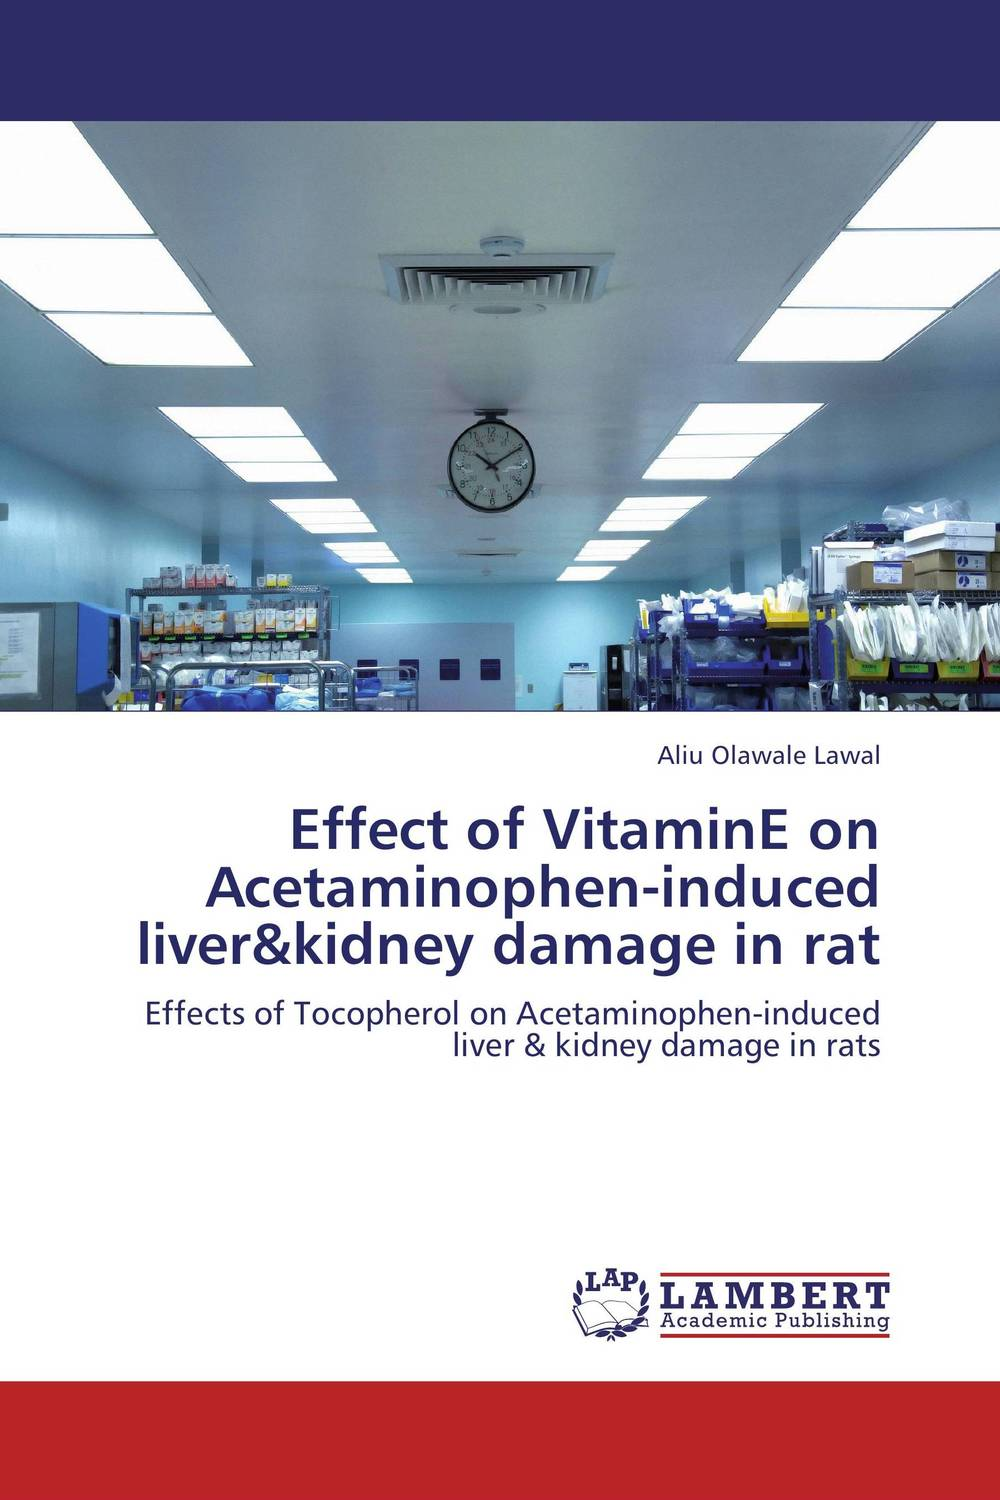 Effect of VitaminE on Acetaminophen-induced liver&kidney damage in rat constraint induced movement therapy in acute stroke patients